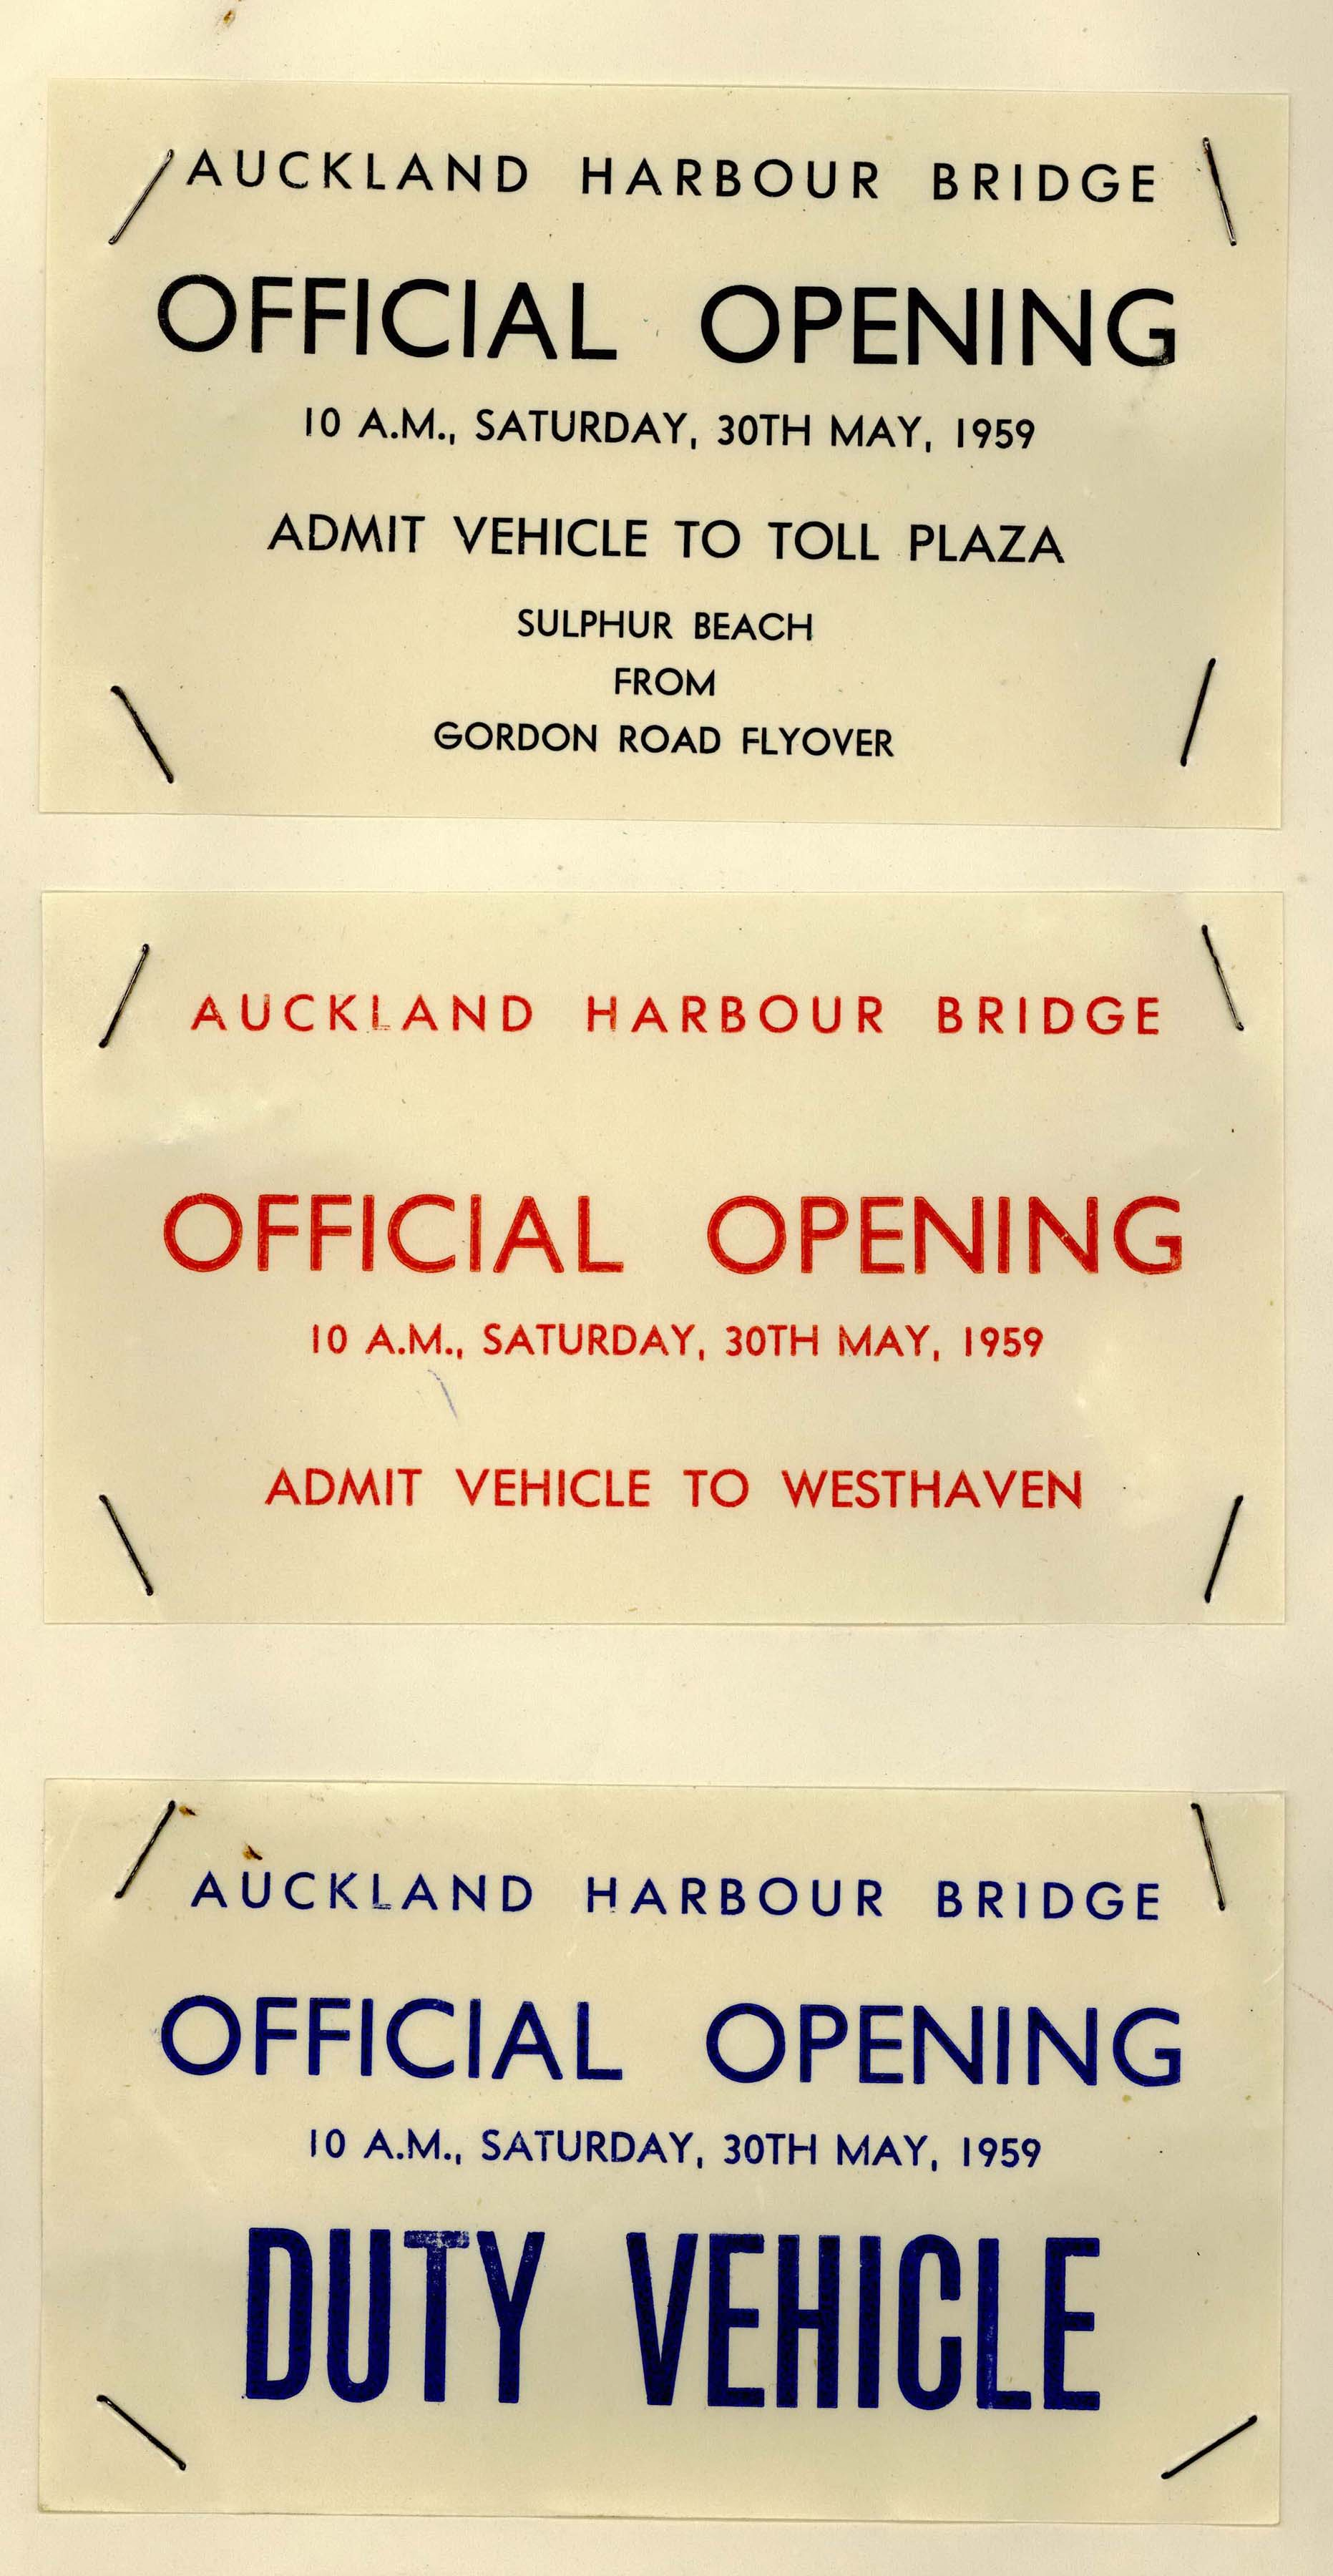 A scan of the card allowing vehicle access for the Bridge opening